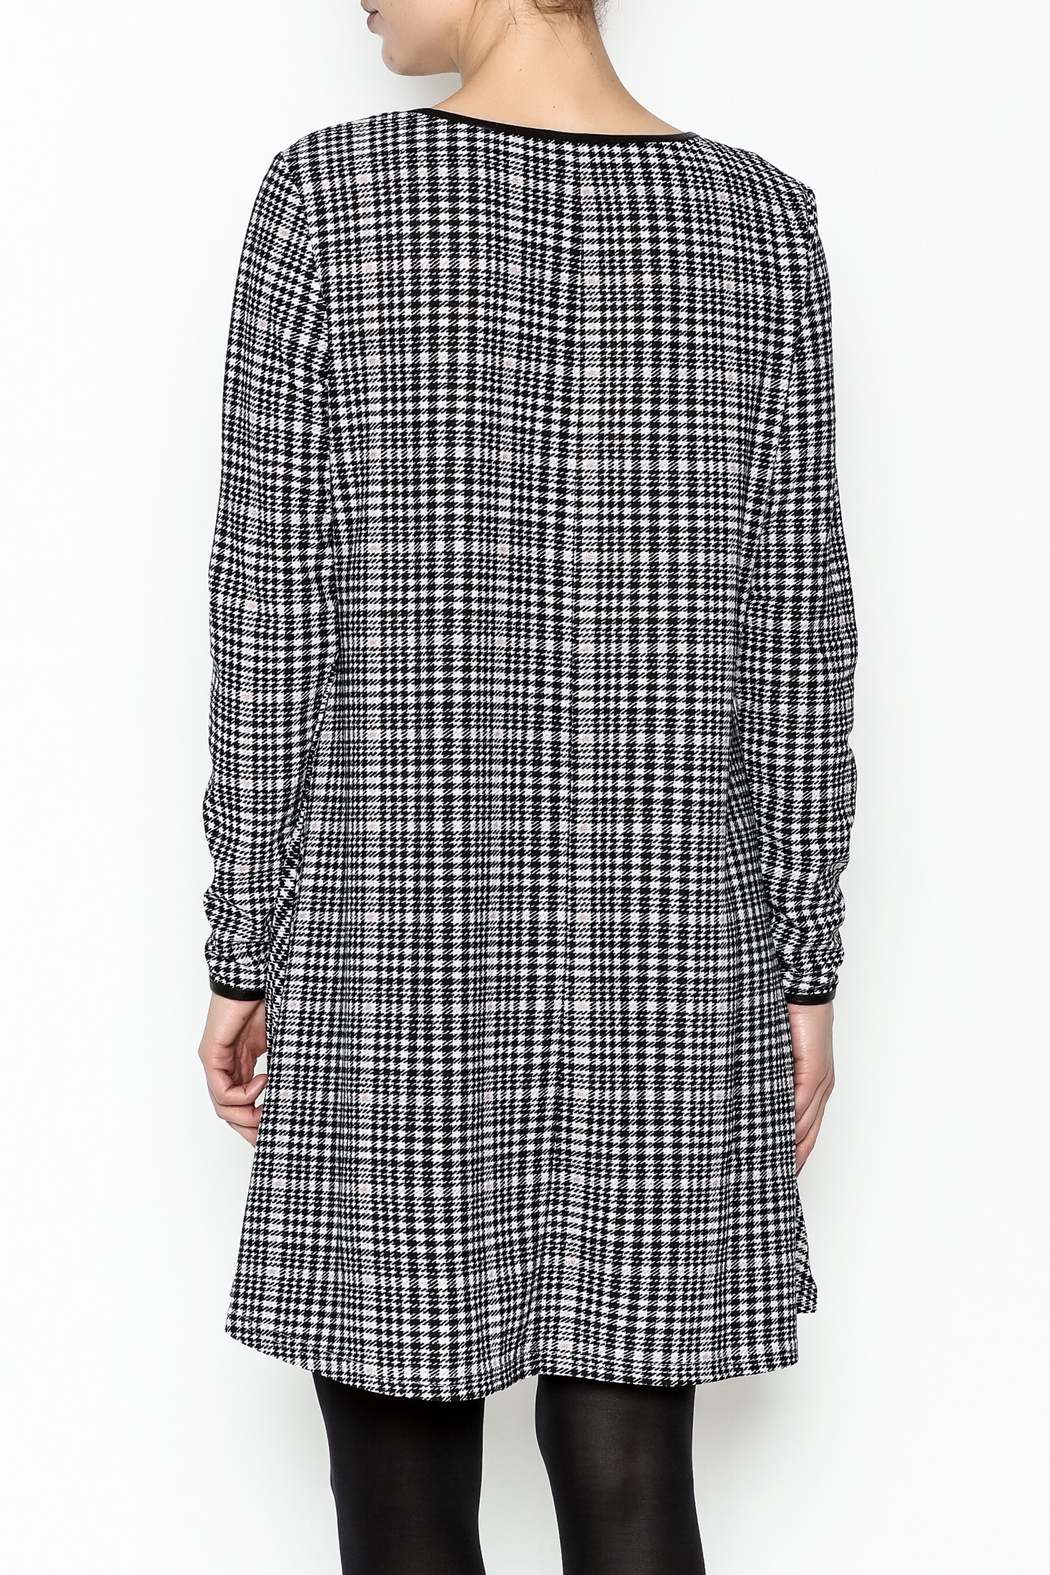 Charlie Paige Houndstooth Check Dress - Back Cropped Image